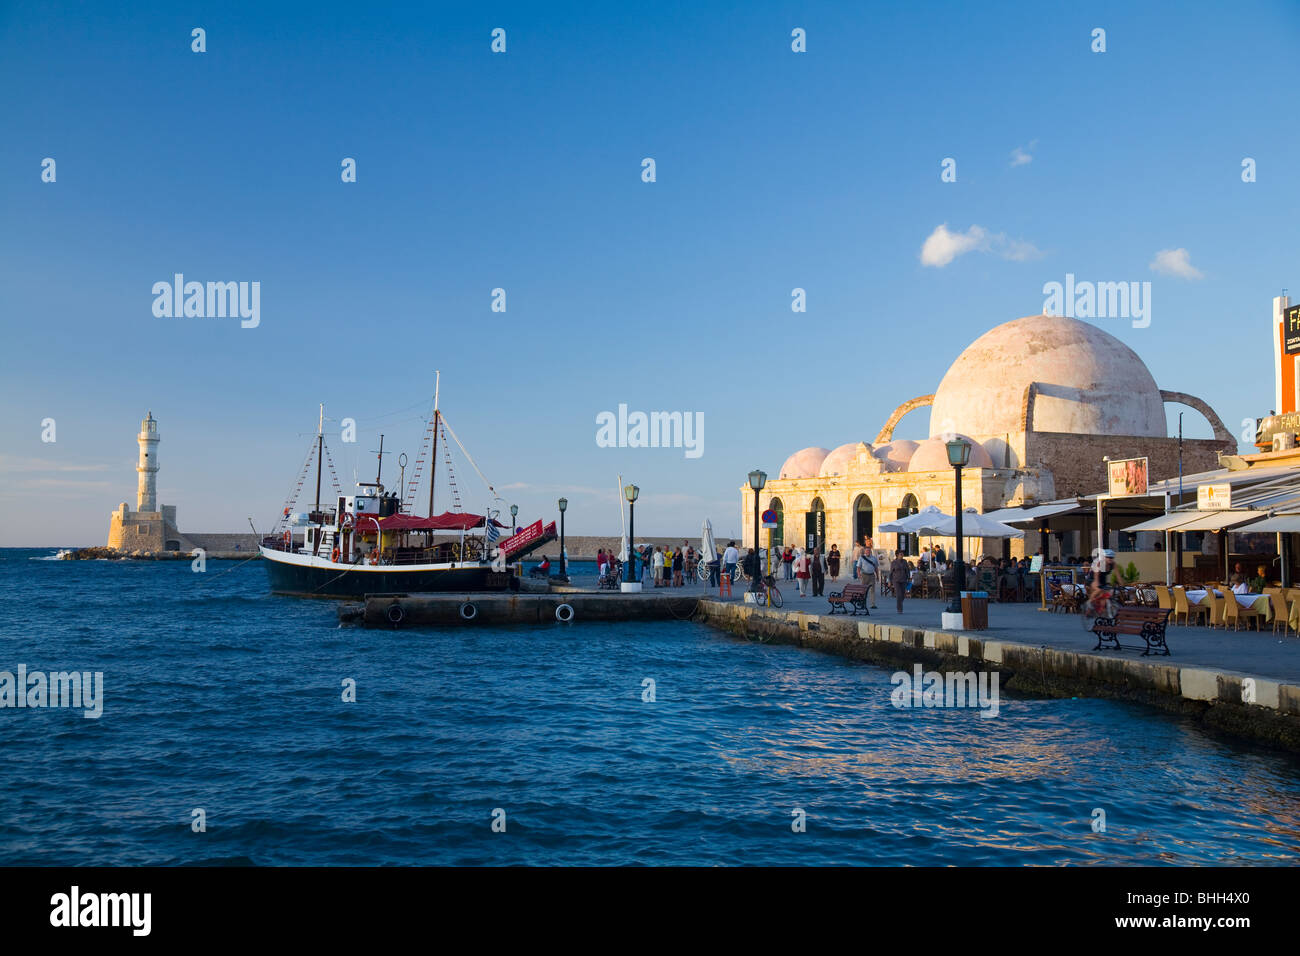 The Venetian harbour and seafront in Chania, including the Mosque of the Janissaries. Crete, Greece. - Stock Image